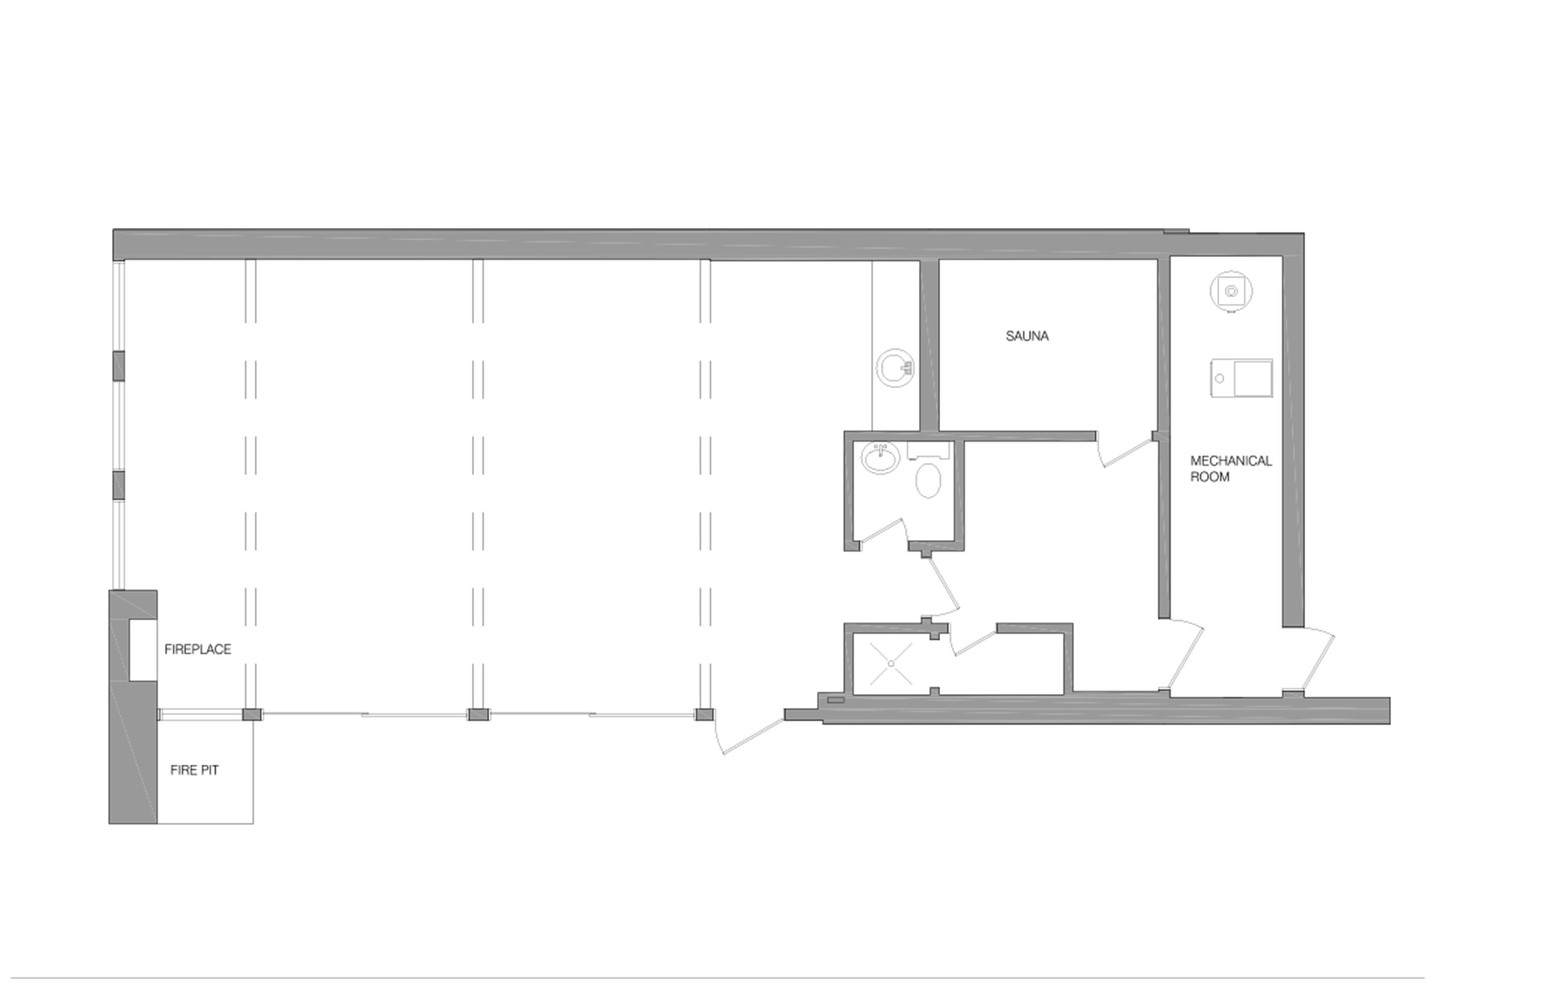 U:ProjectsactiveRoche PoolhousedrawingsPlan existing PRESEN